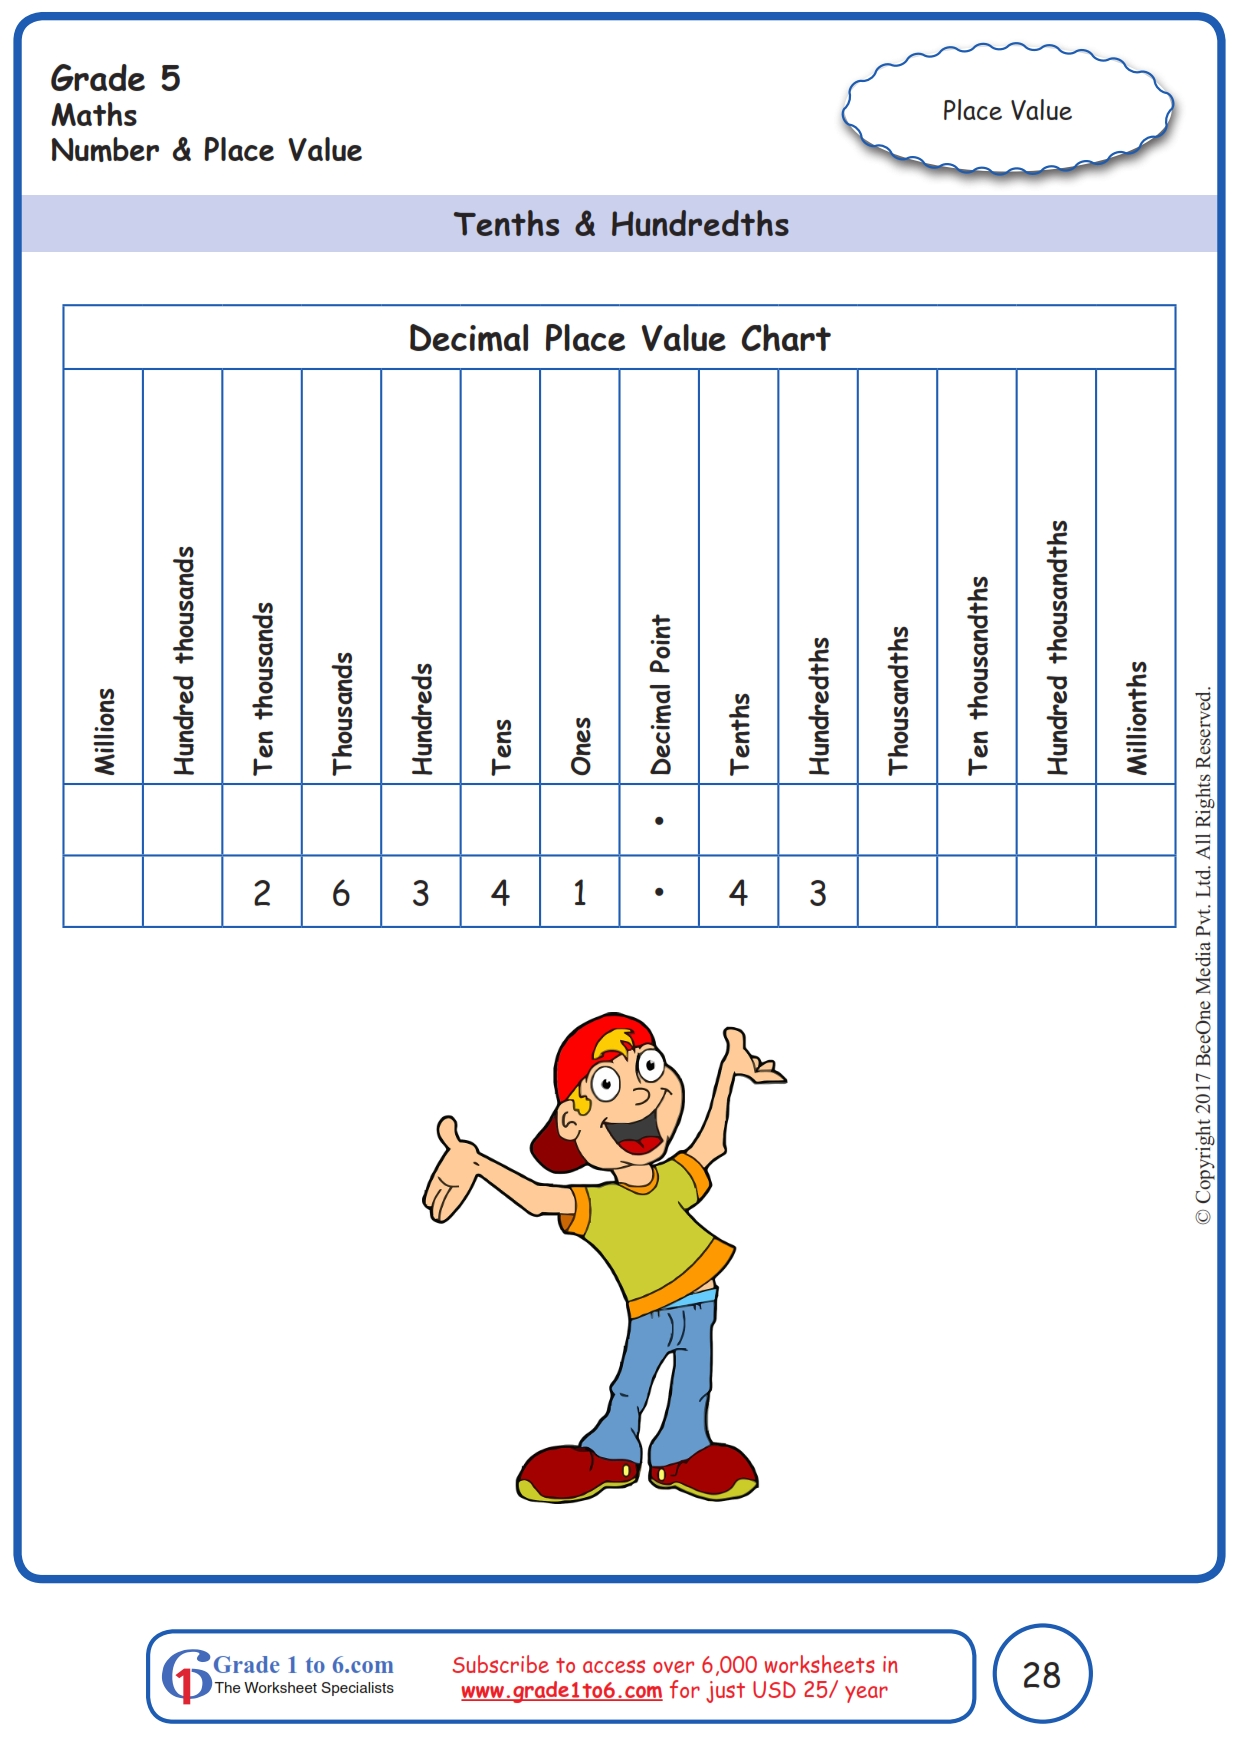 Decimal Place Value Worksheets Grade 5 Ade1to6